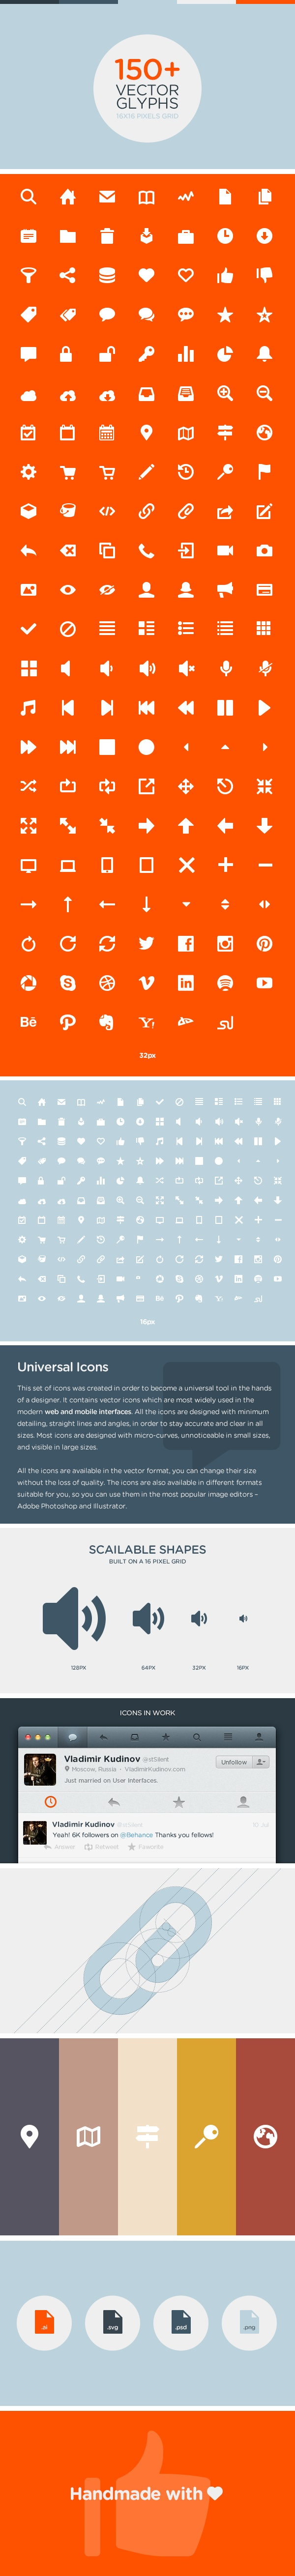 Unicons - Universal vector icons for mobile and web by Sergey Shmidt, via Behance $15